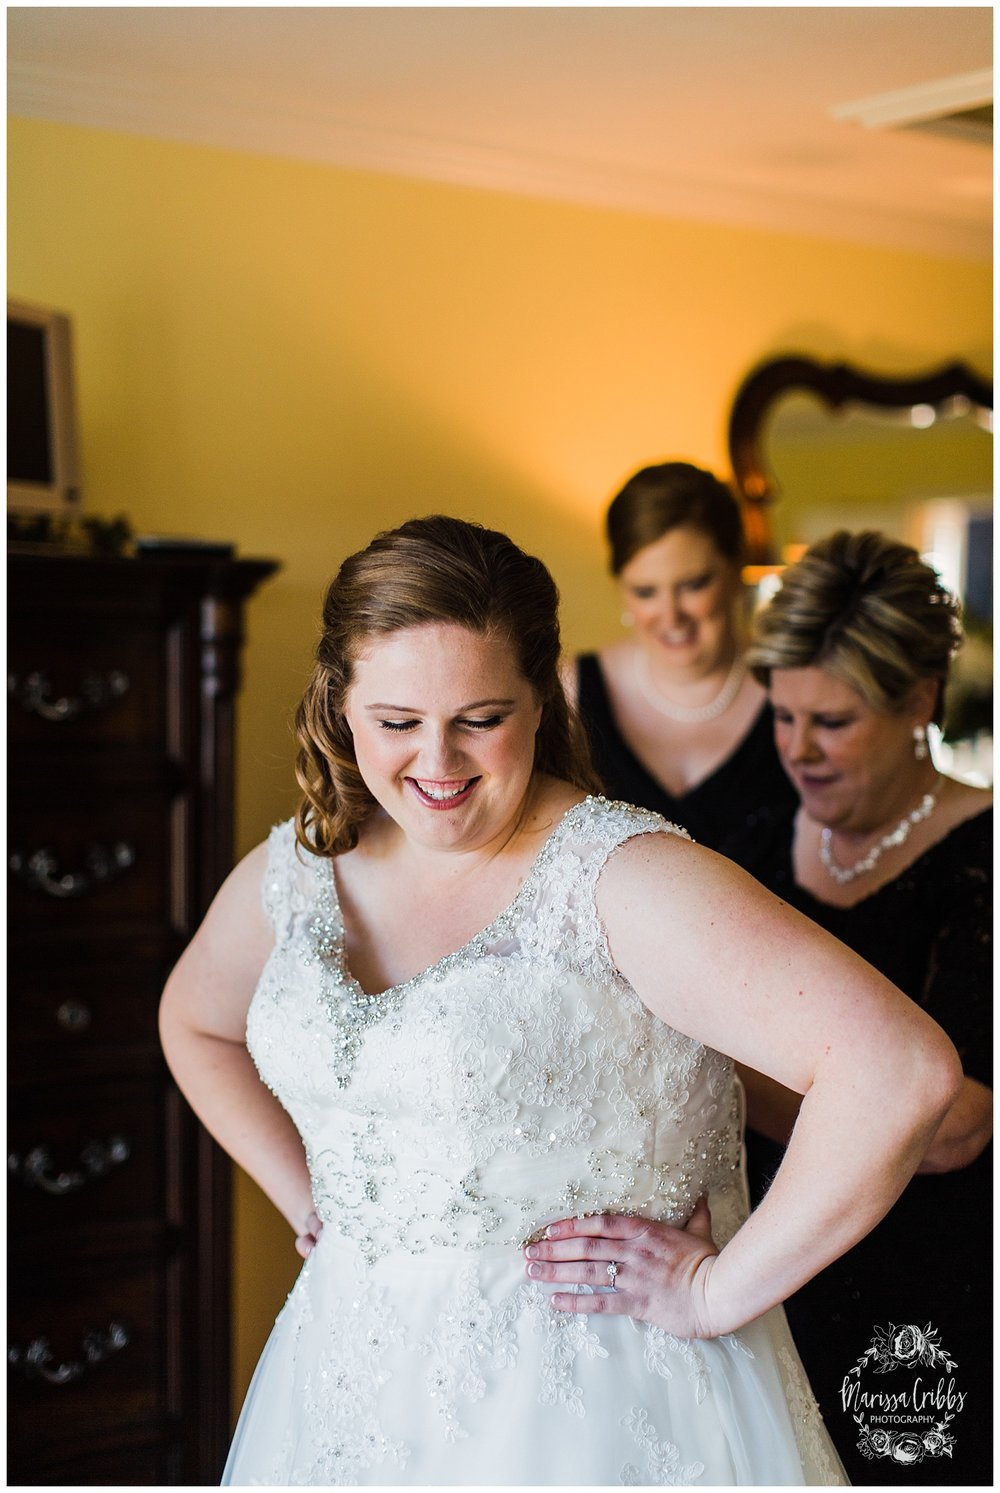 KELLY WEDDING | VENUE AT WILLOW CREEK | MARISSA CRIBBS PHOTOGRAPHY_3670.jpg